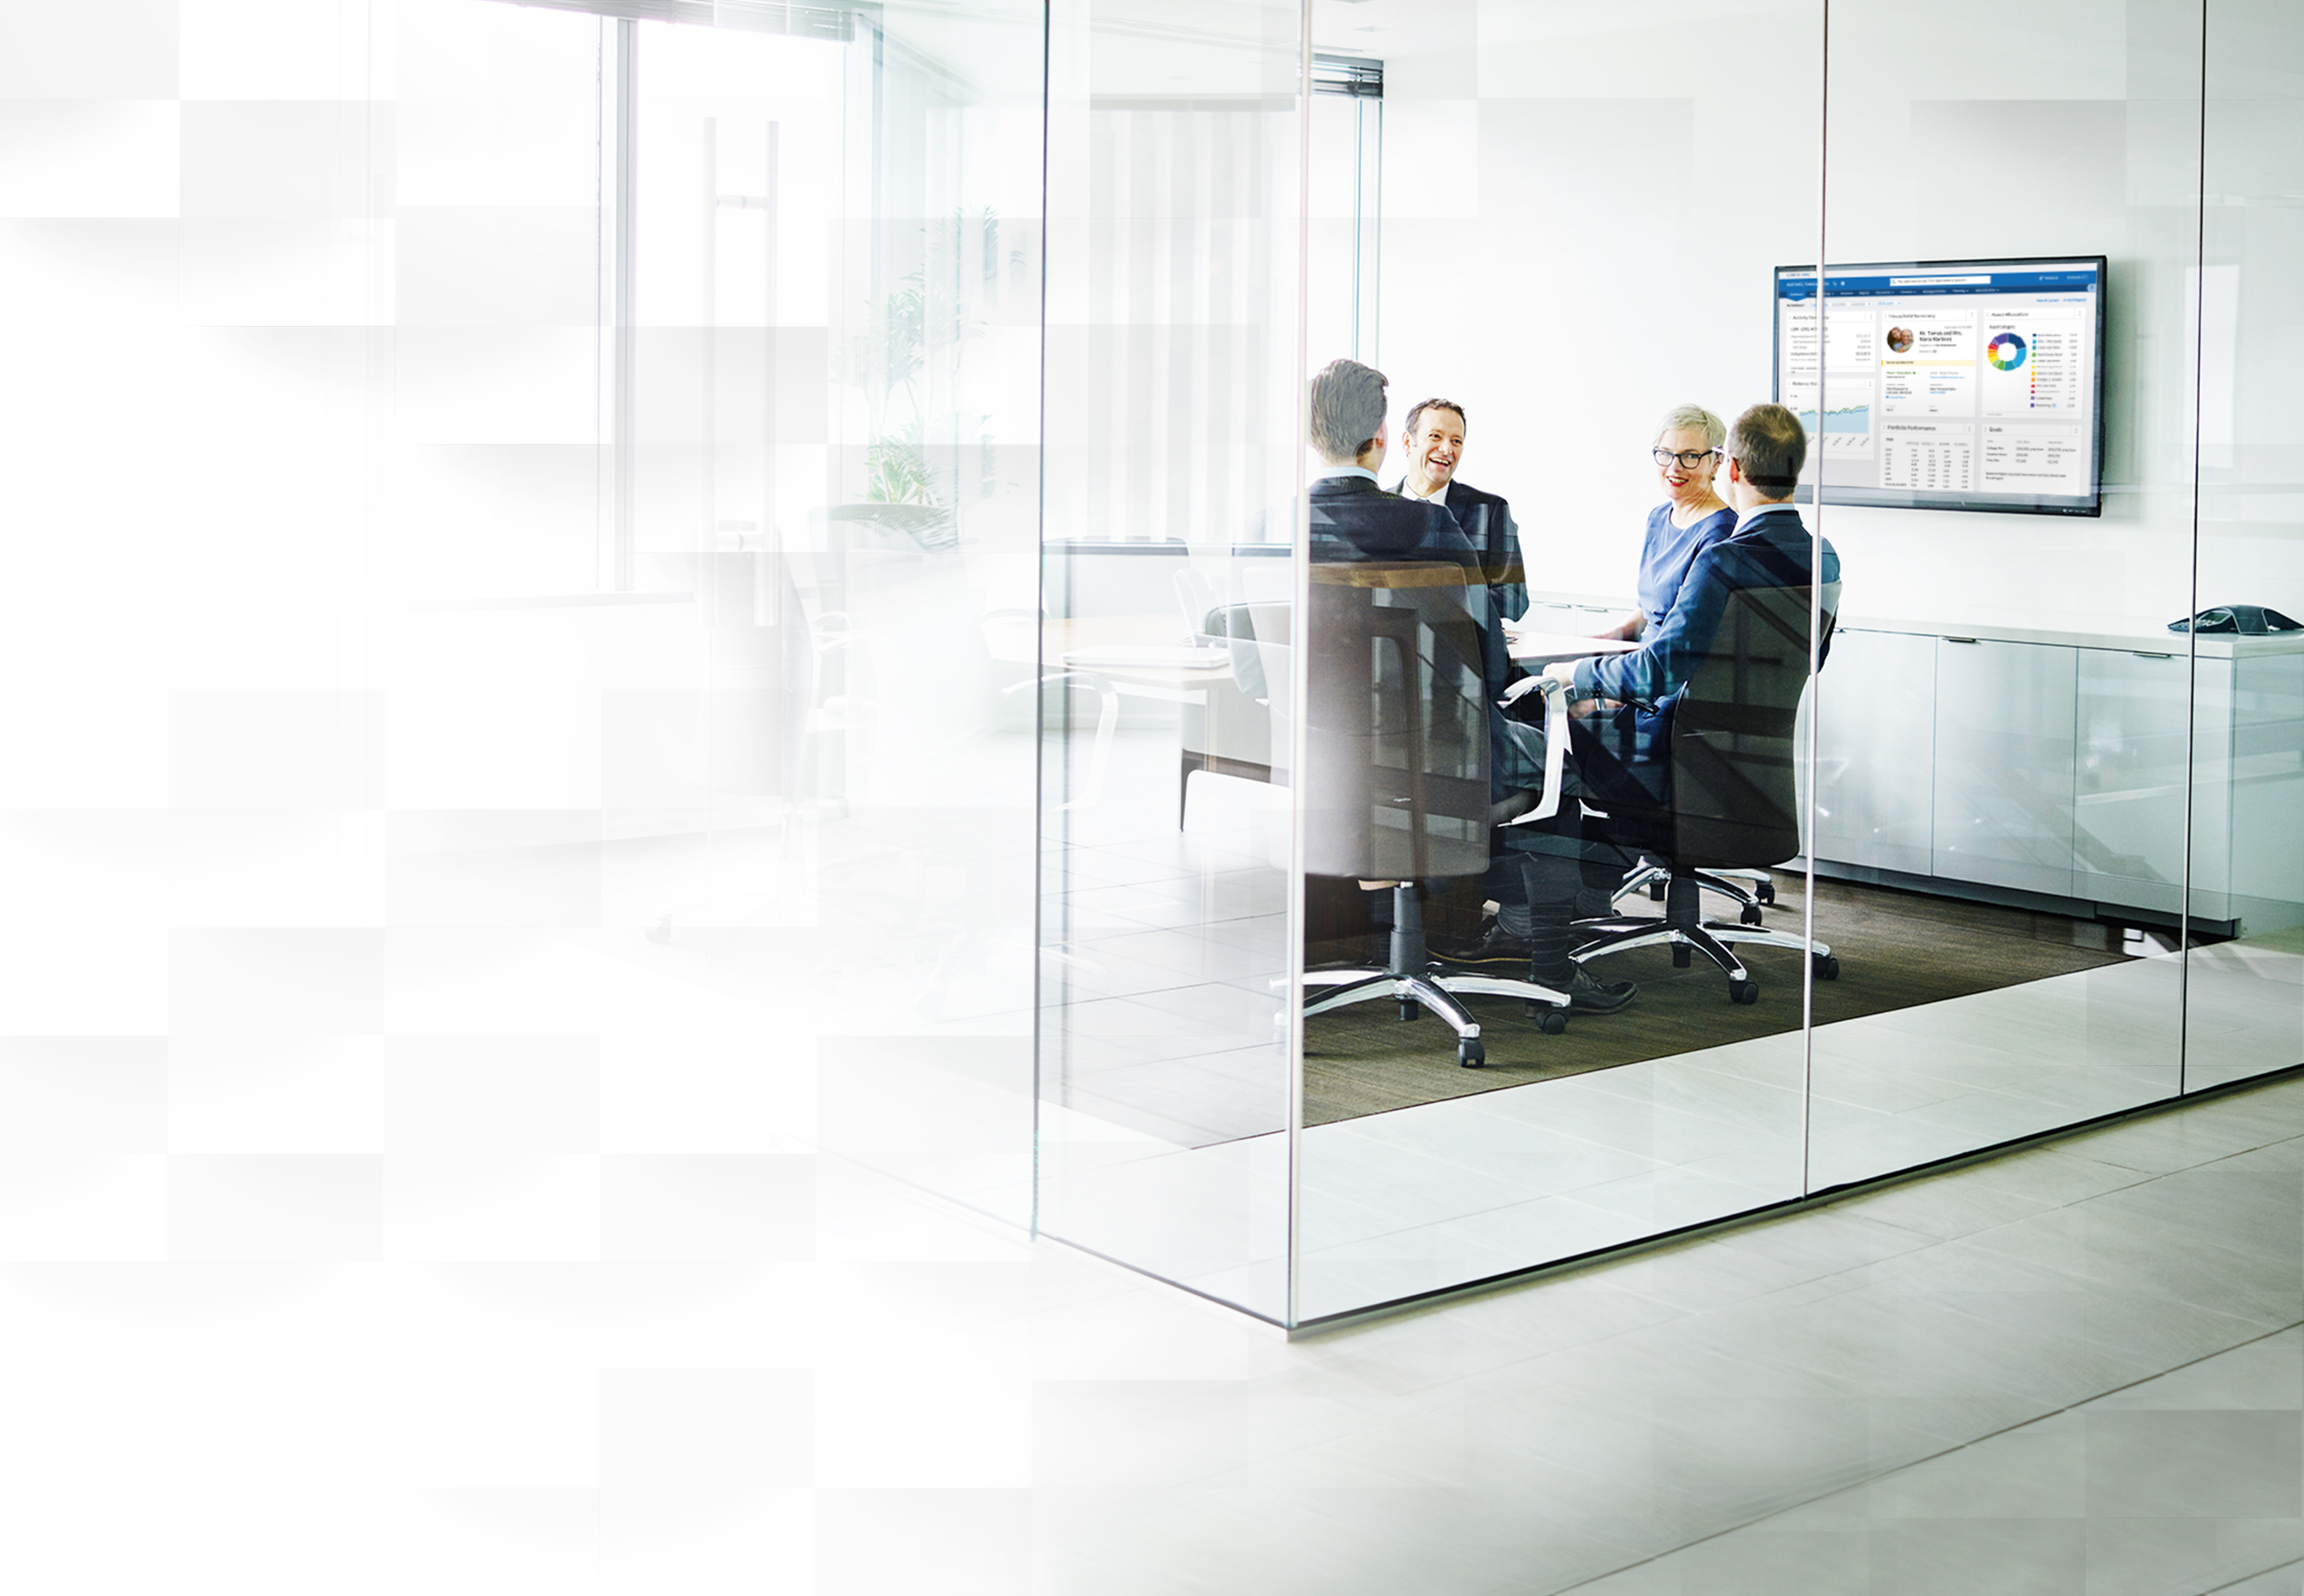 Executives in a meeting